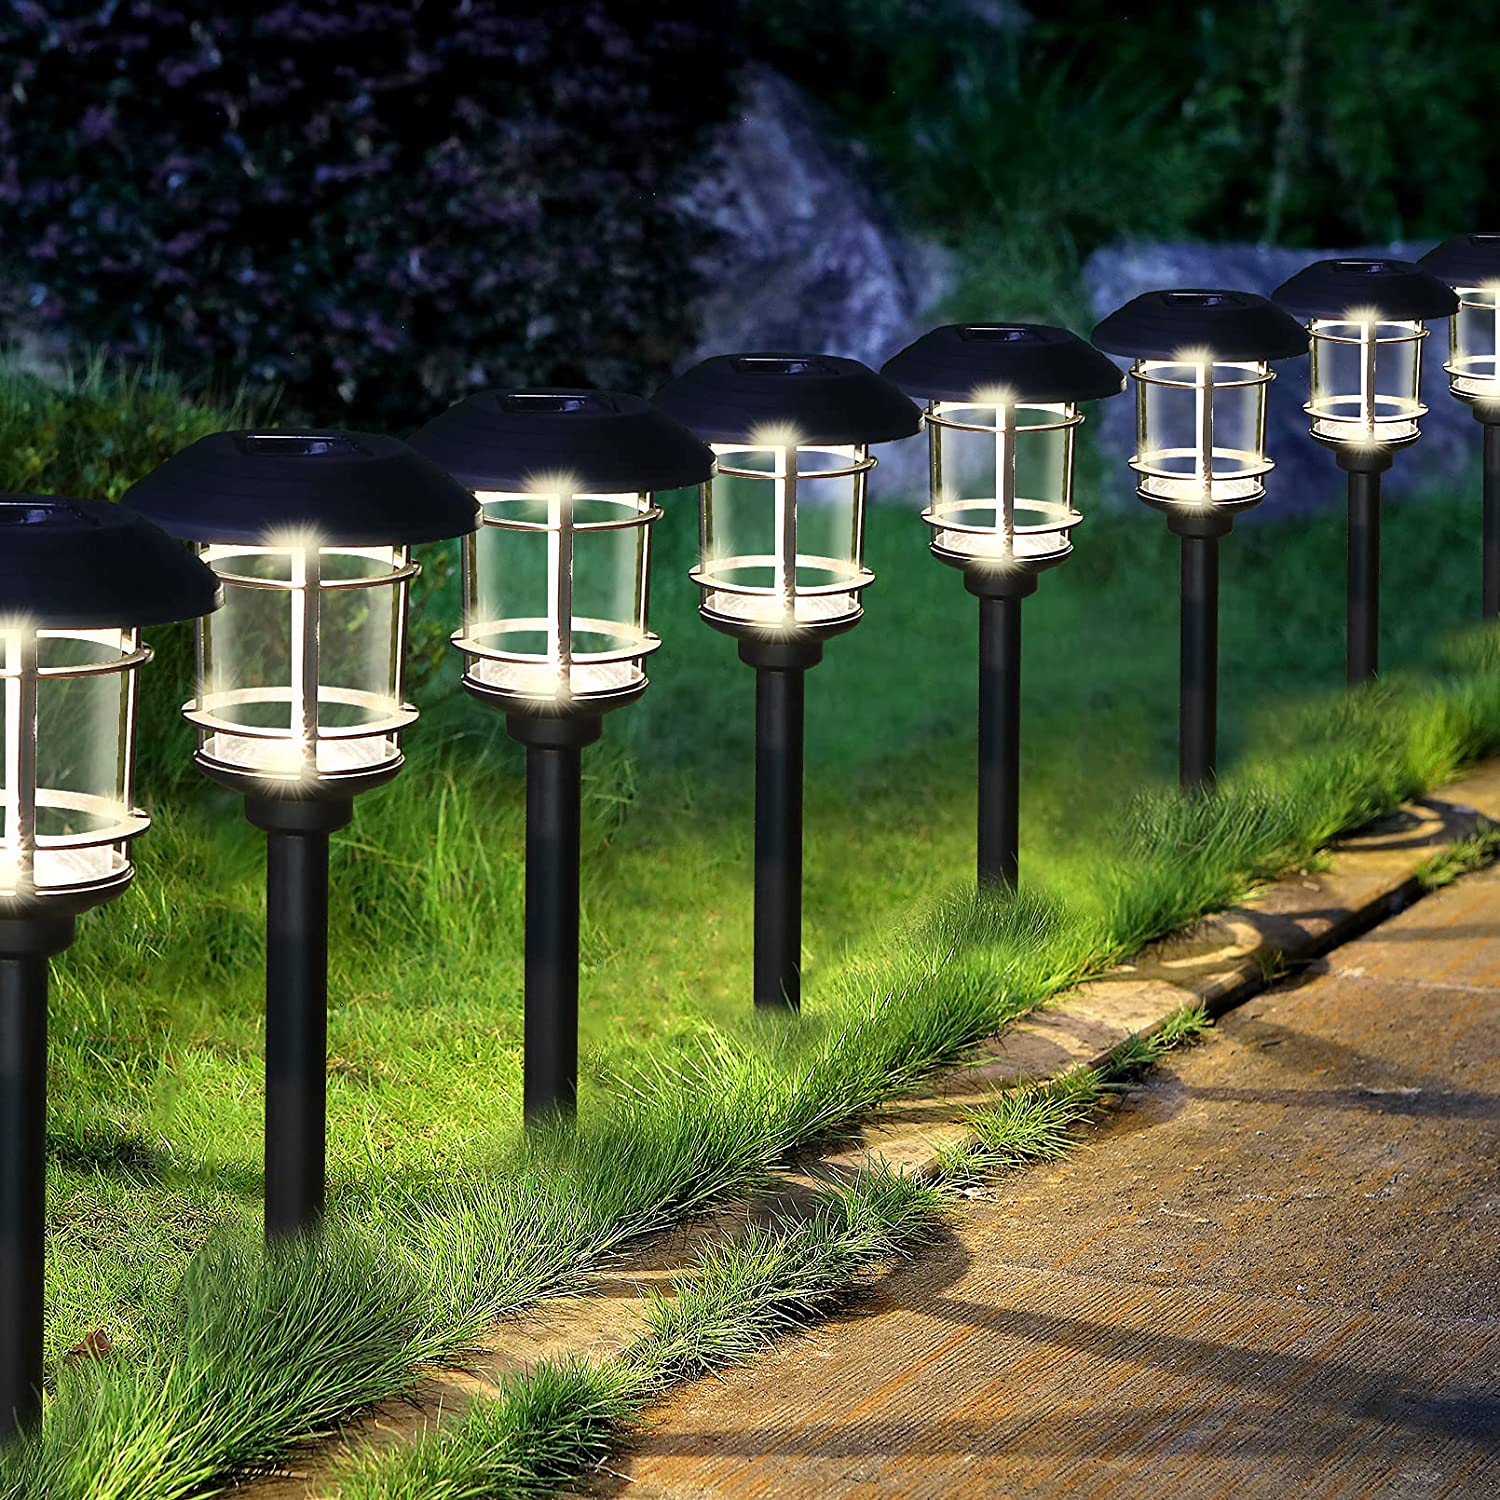 Solar Pathway Lights Outdoor, 8 Pack Bright Solar Powered Yard Lights, IP65 Waterproof Auto On/Off LED Solar Landscape Lights for Lawn, Garden, Path, Walkway or Patio,Yard and Driveway